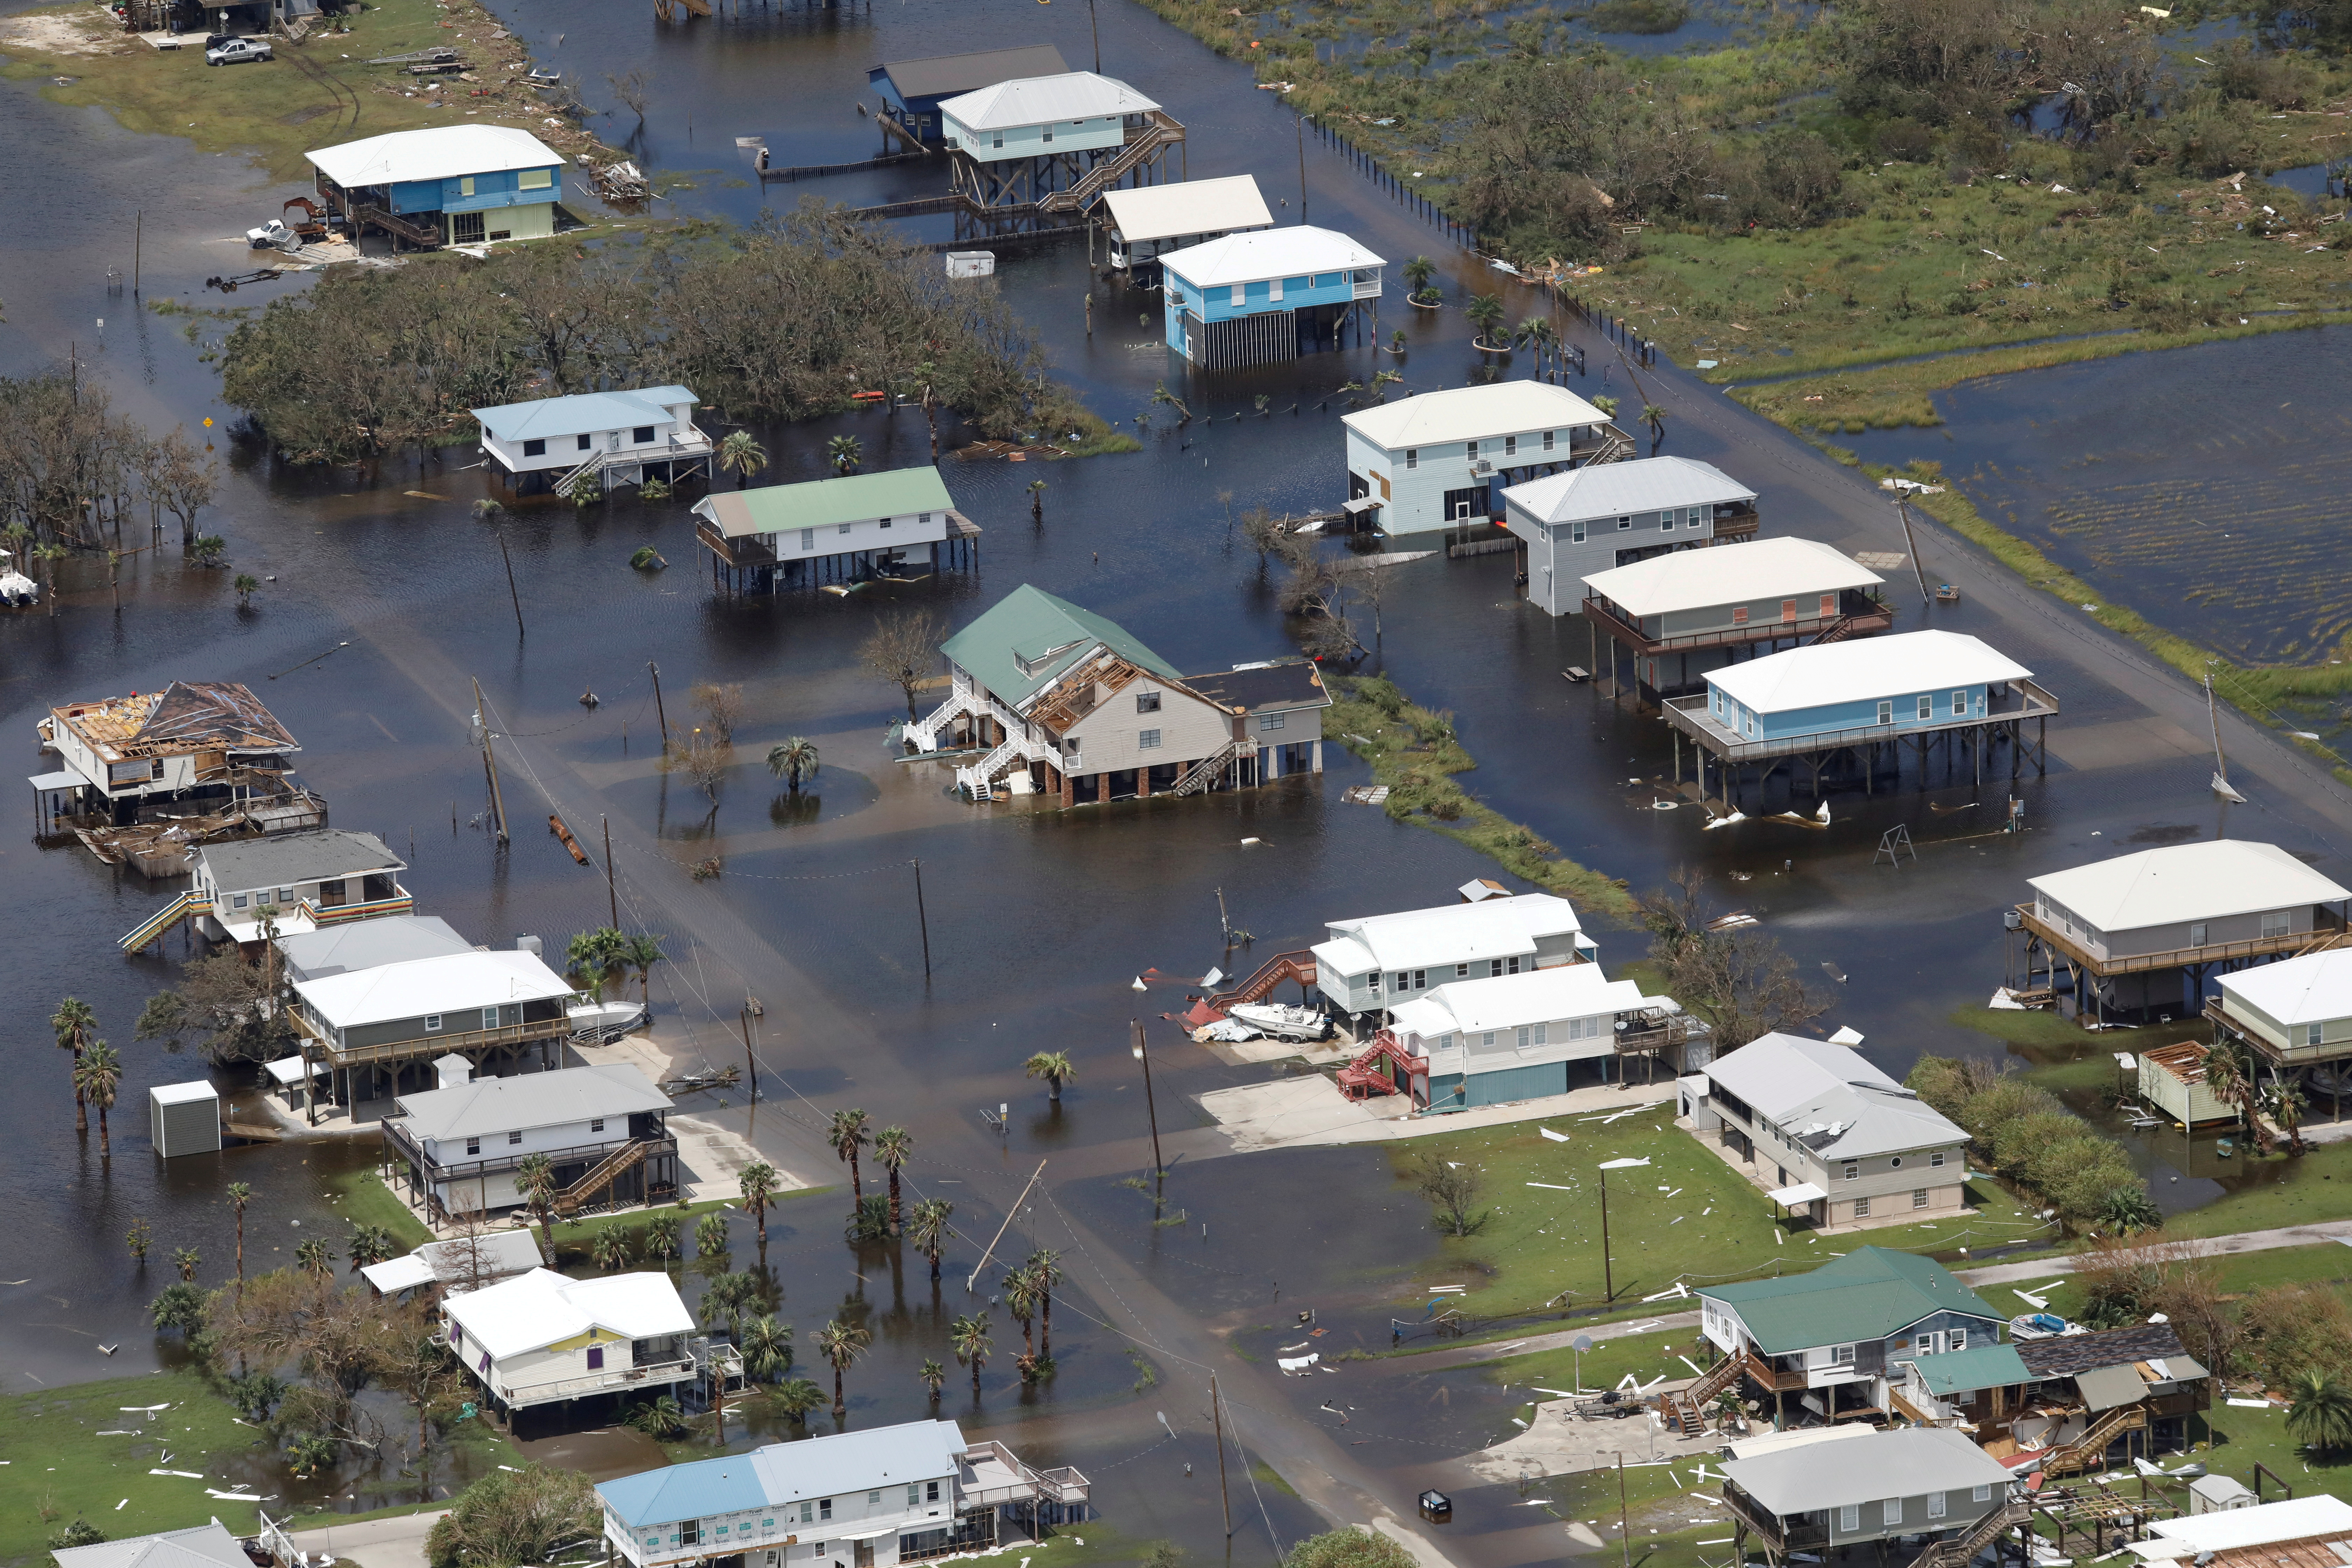 An aerial view shows destroyed houses in a flooded area after Hurricane Ida hit Grand Isle, Louisiana, August 31, 2021. REUTERS/Marco Bello/File Photo